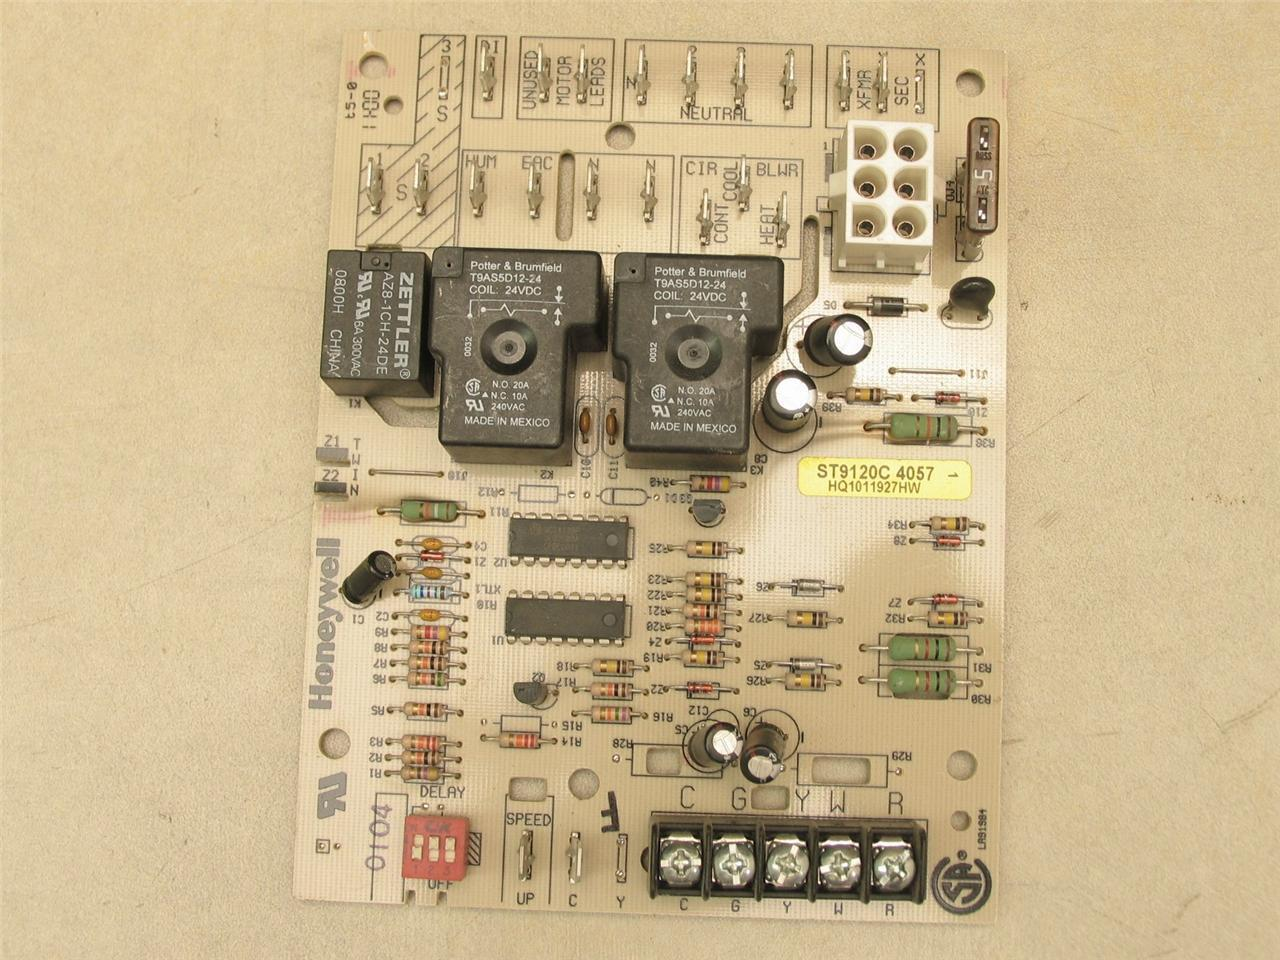 honeywell st9120c4057 furnace control circuit board Board Layout Furnace Control Circuit Thermostat Circuit Board Of